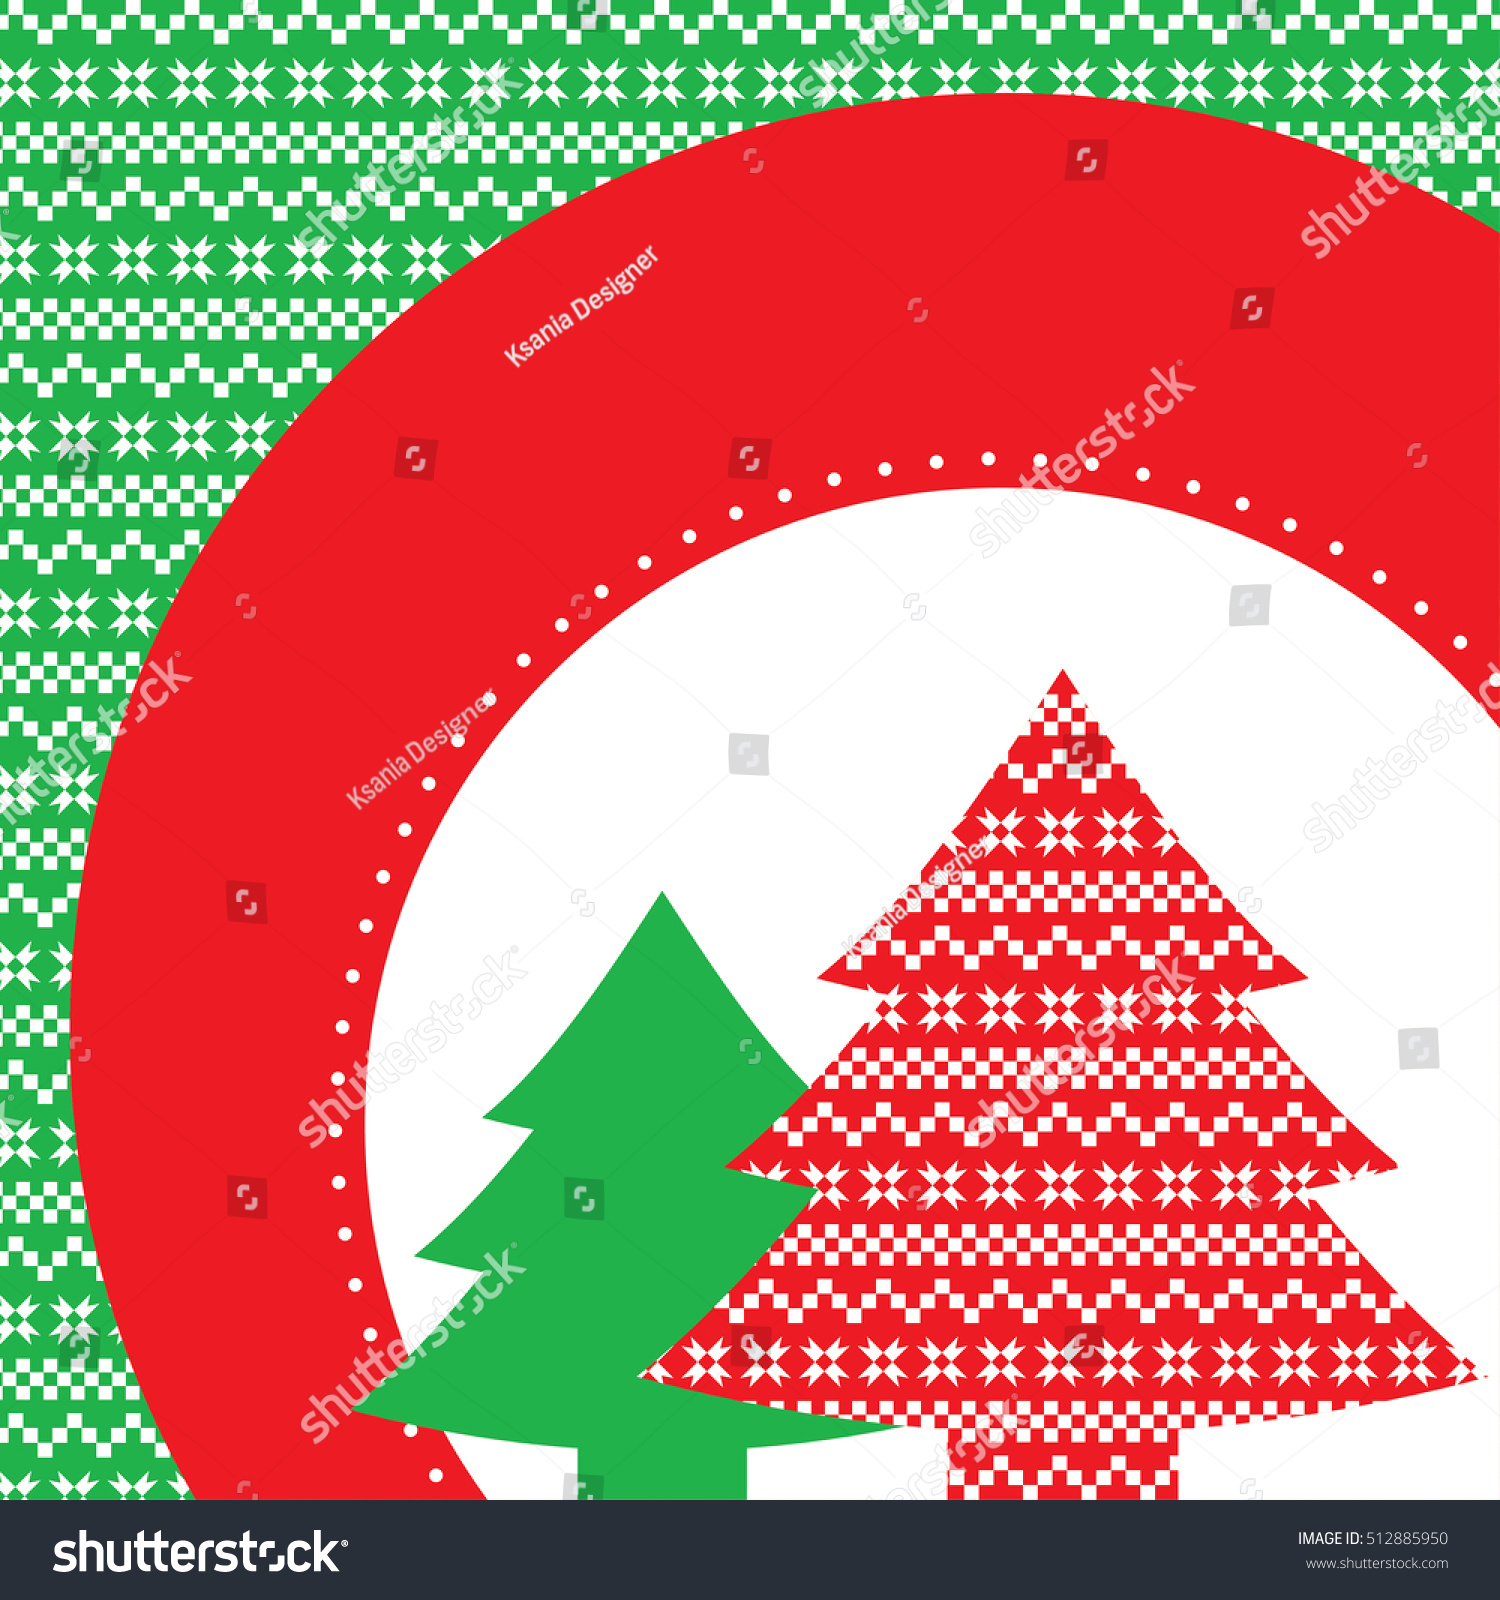 Vector Illustration Of New Year And Christmas Decorative Trees With